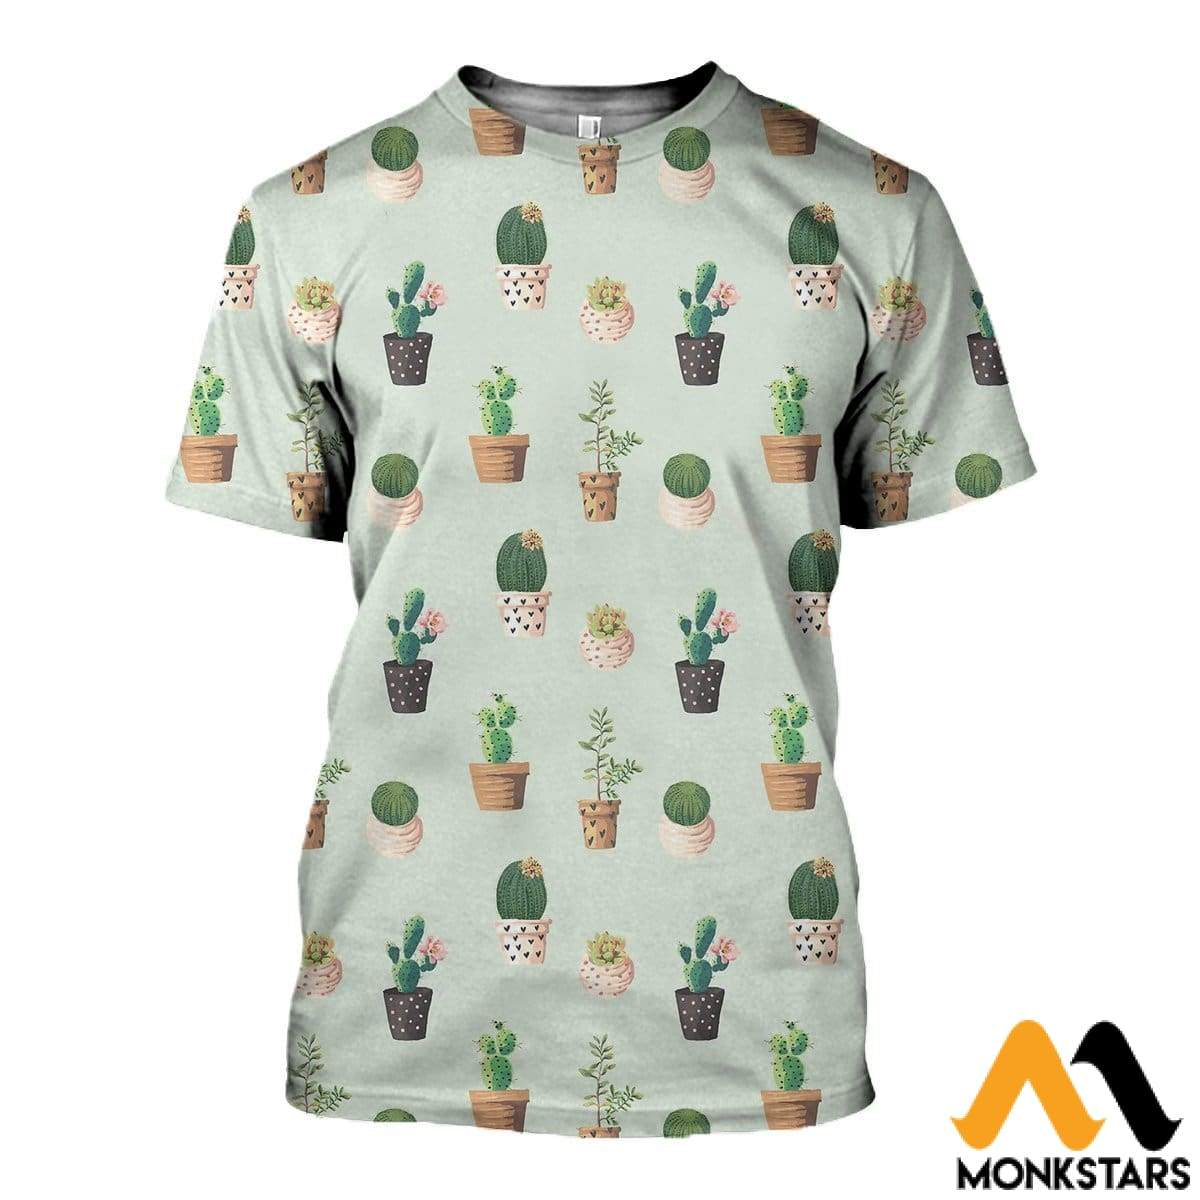 a6683591d689 3D All Over Printed Cactus Clothes - Monkstars Inc.